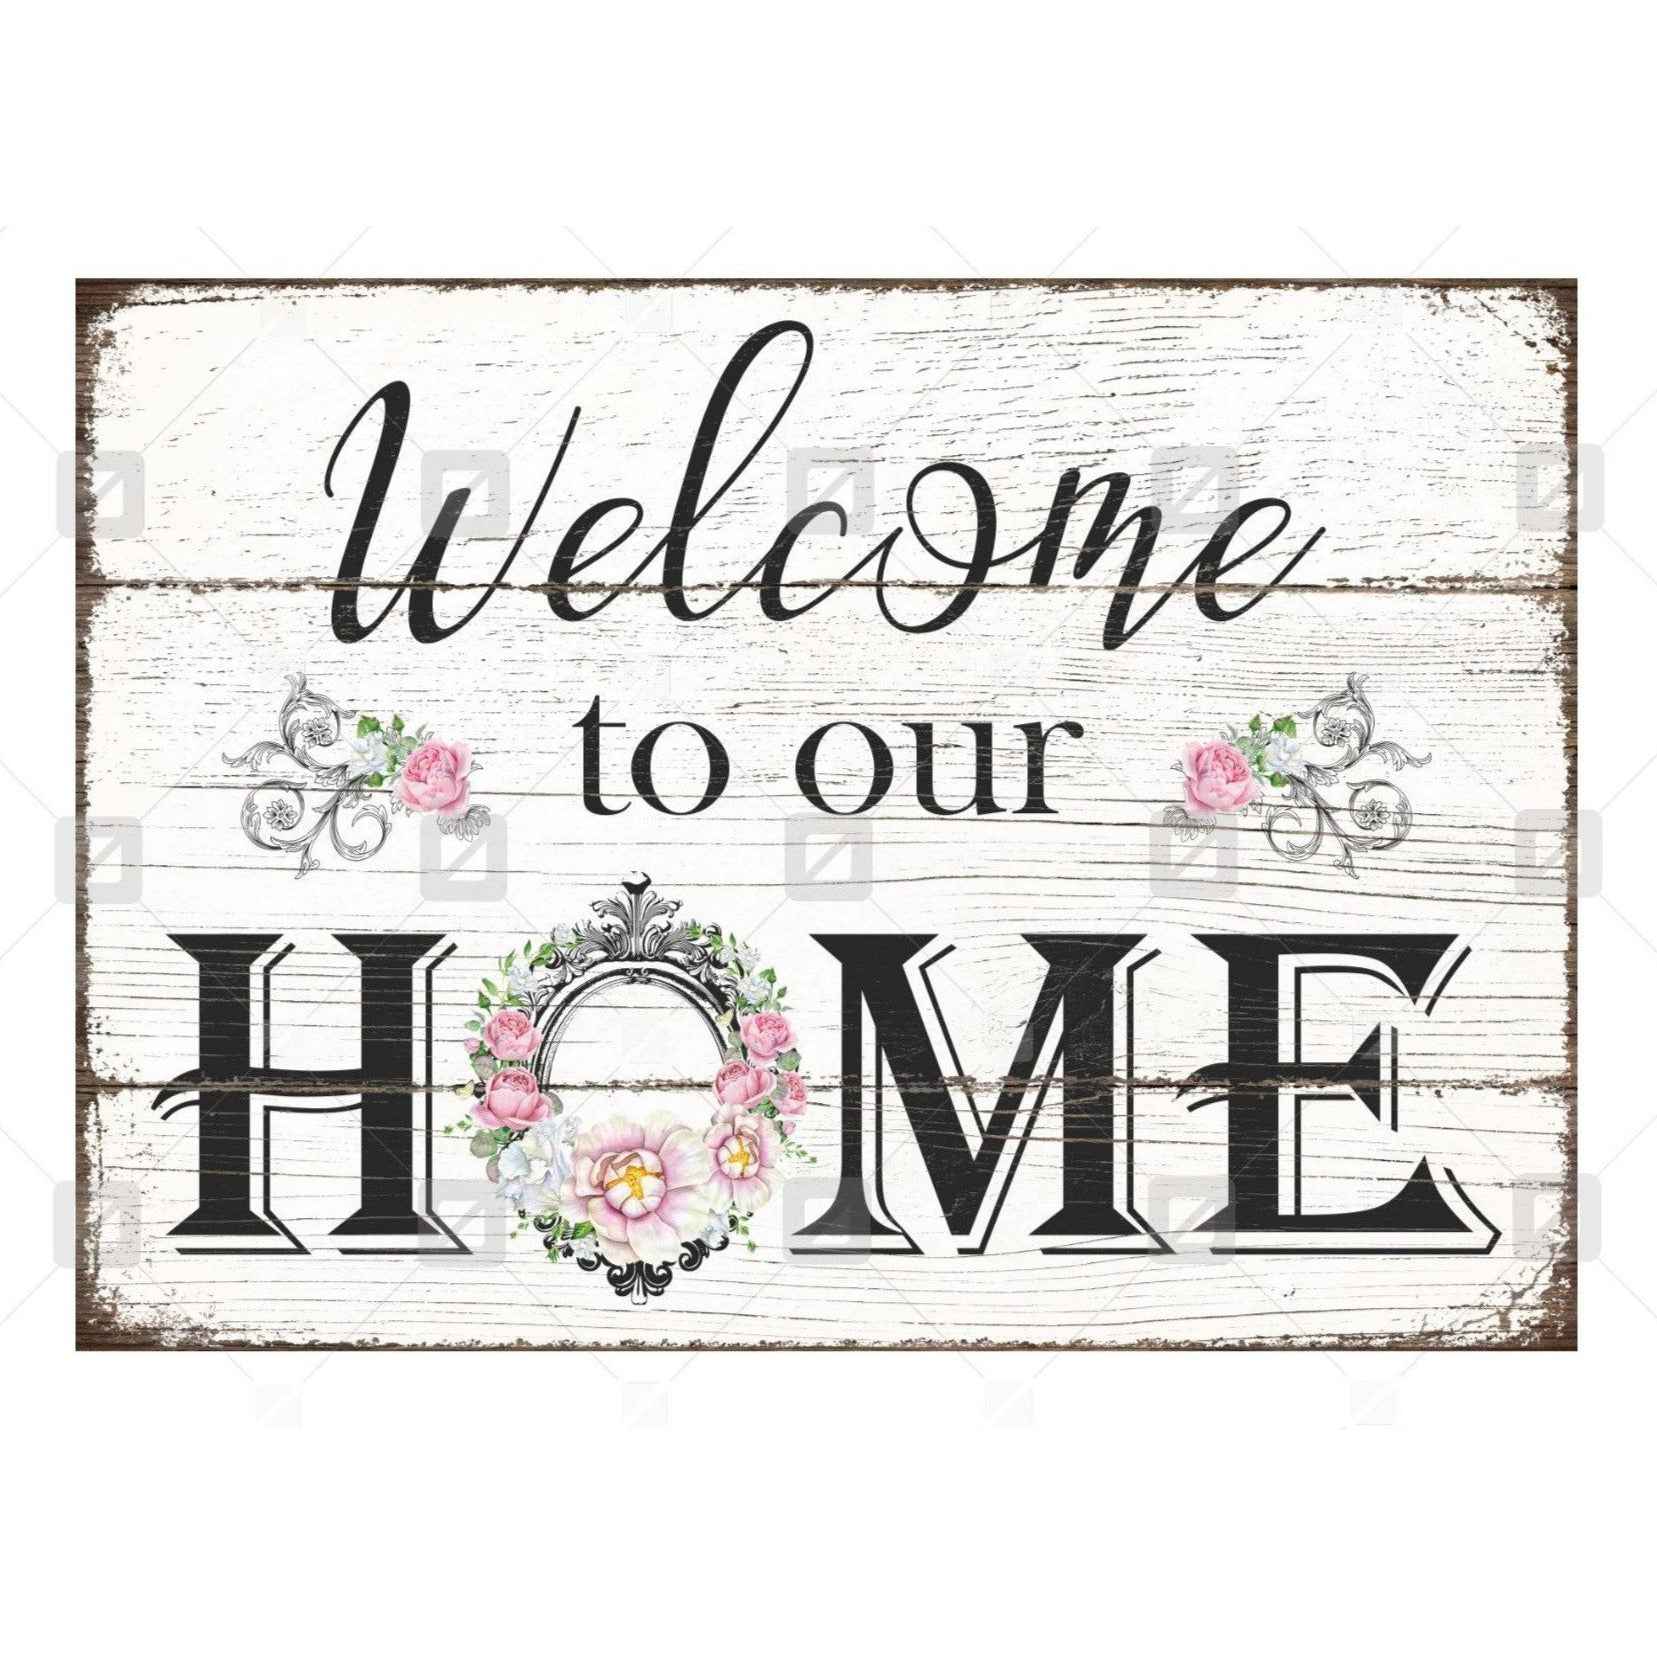 Vintage Welcome To Our Home Sign Wreath Enhancement Michelle S Adoorable Creations